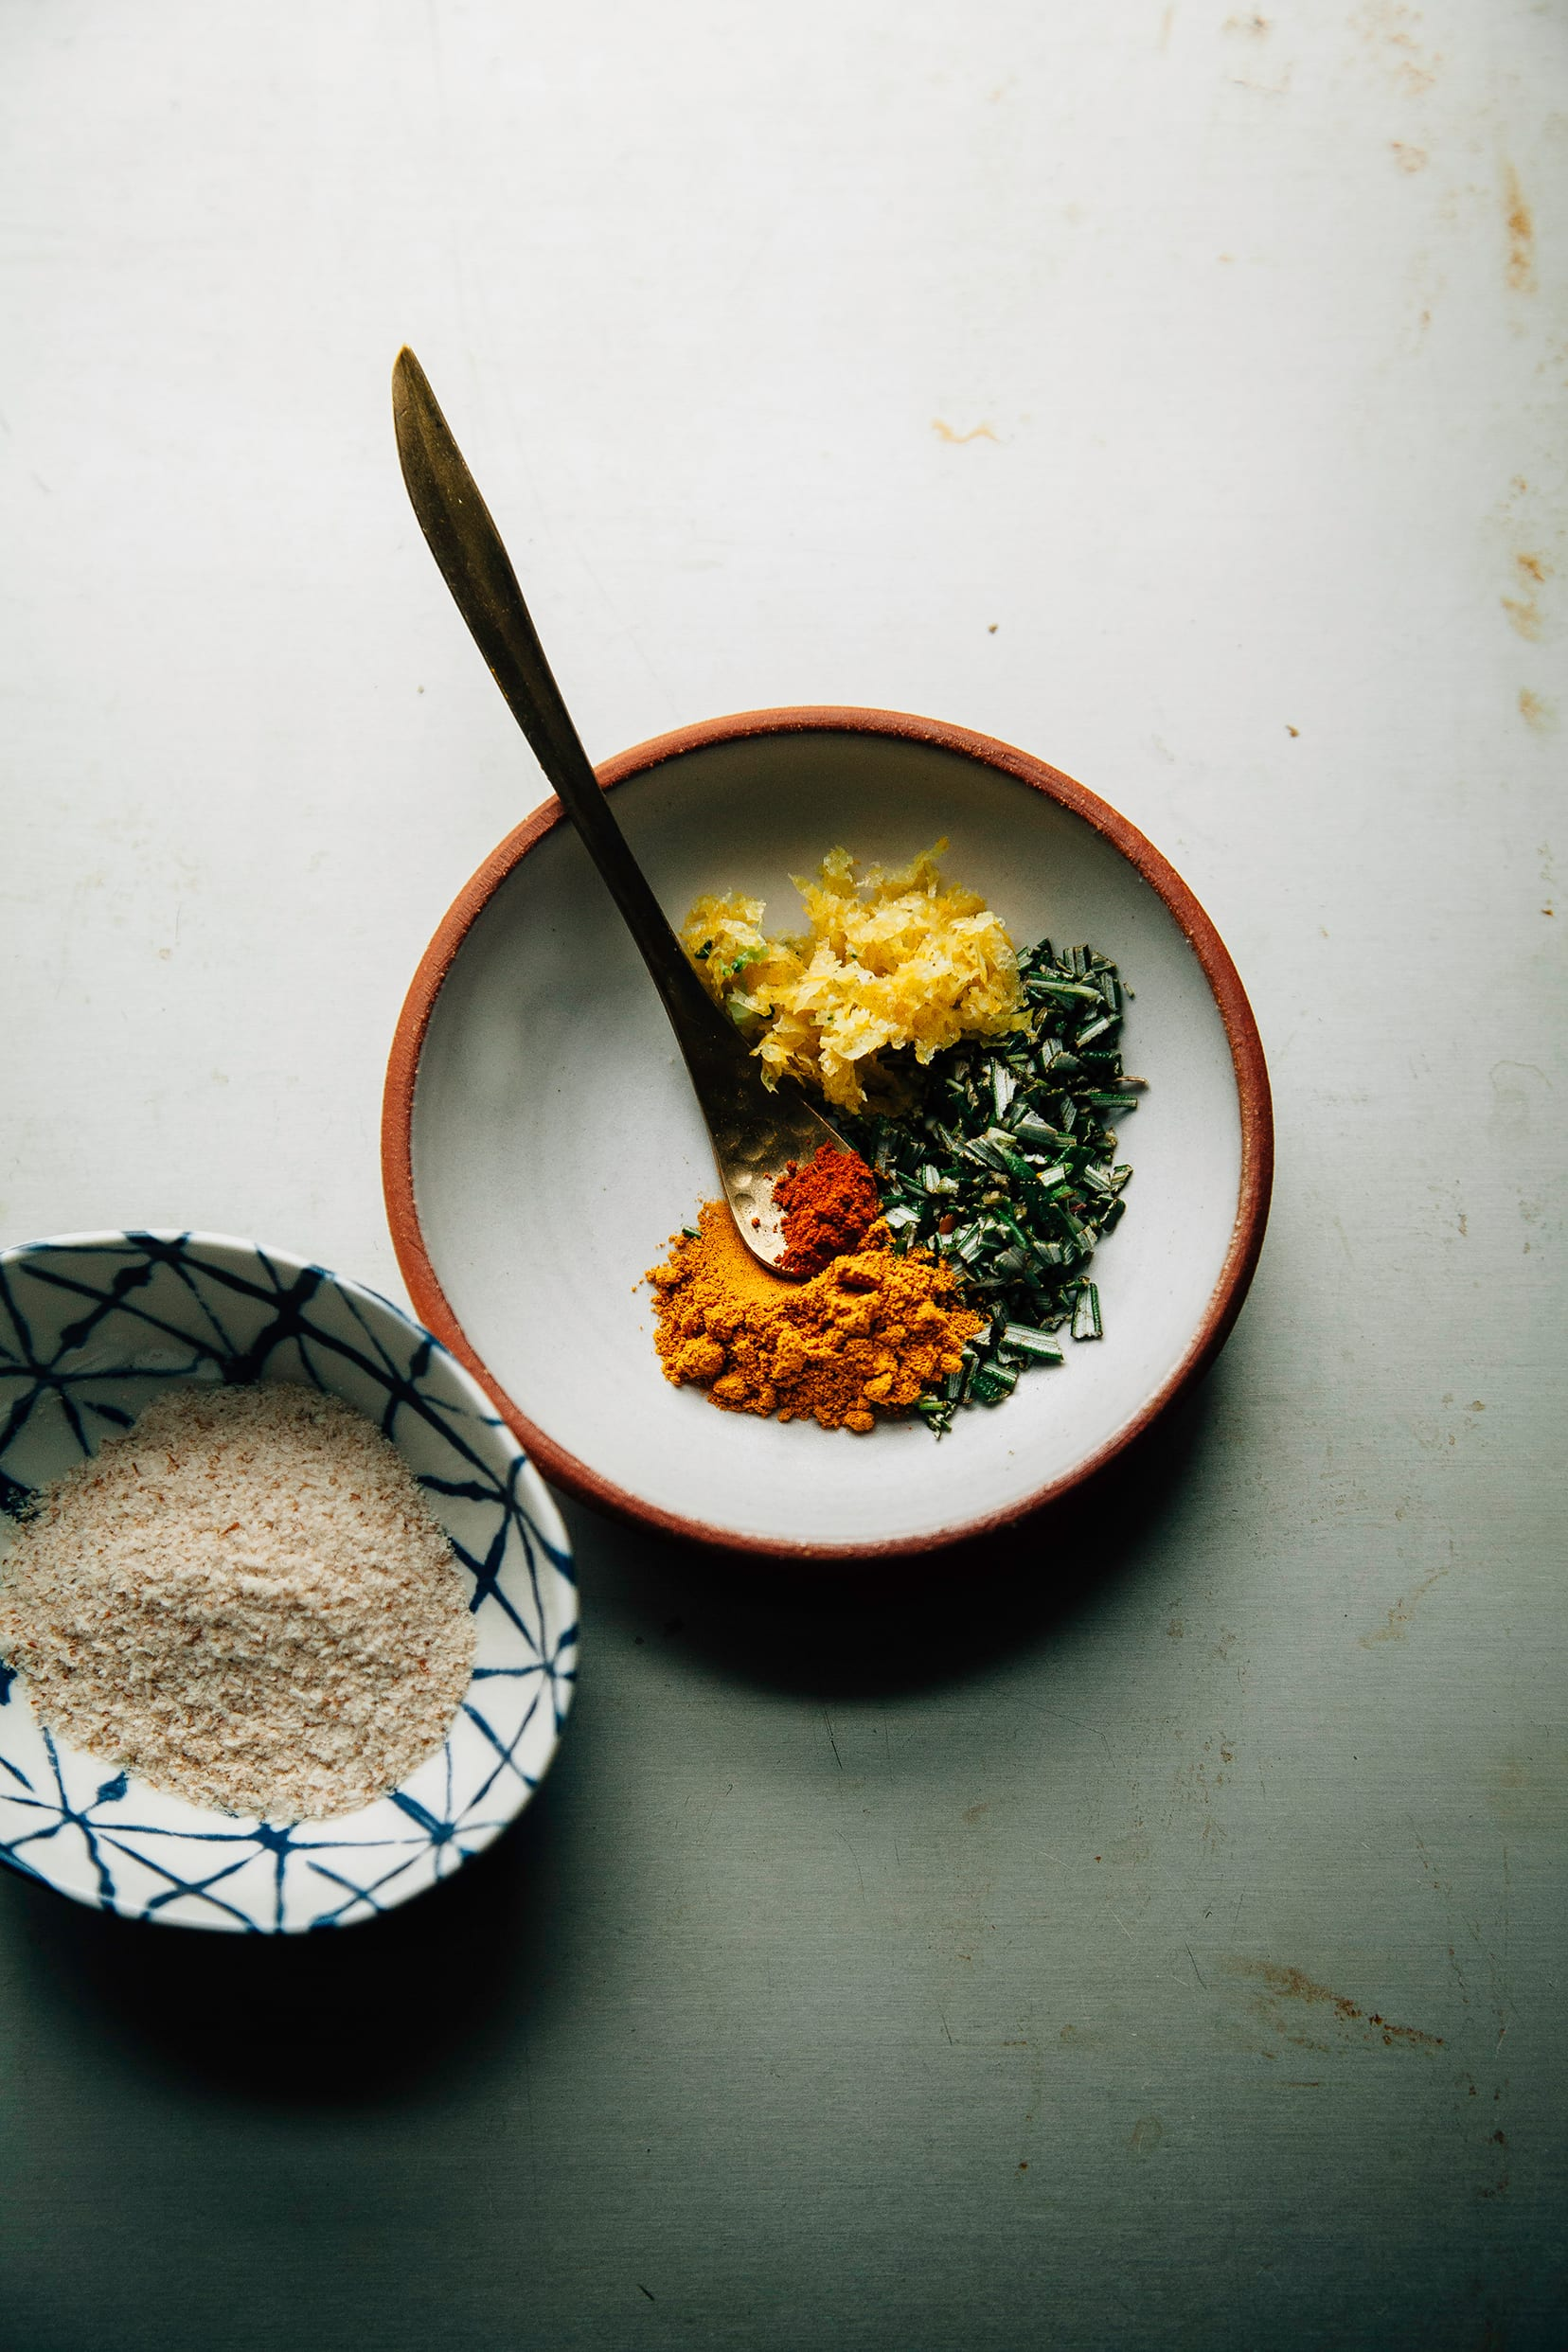 An overhead shot of a small bowl with chopped herbs and spices.